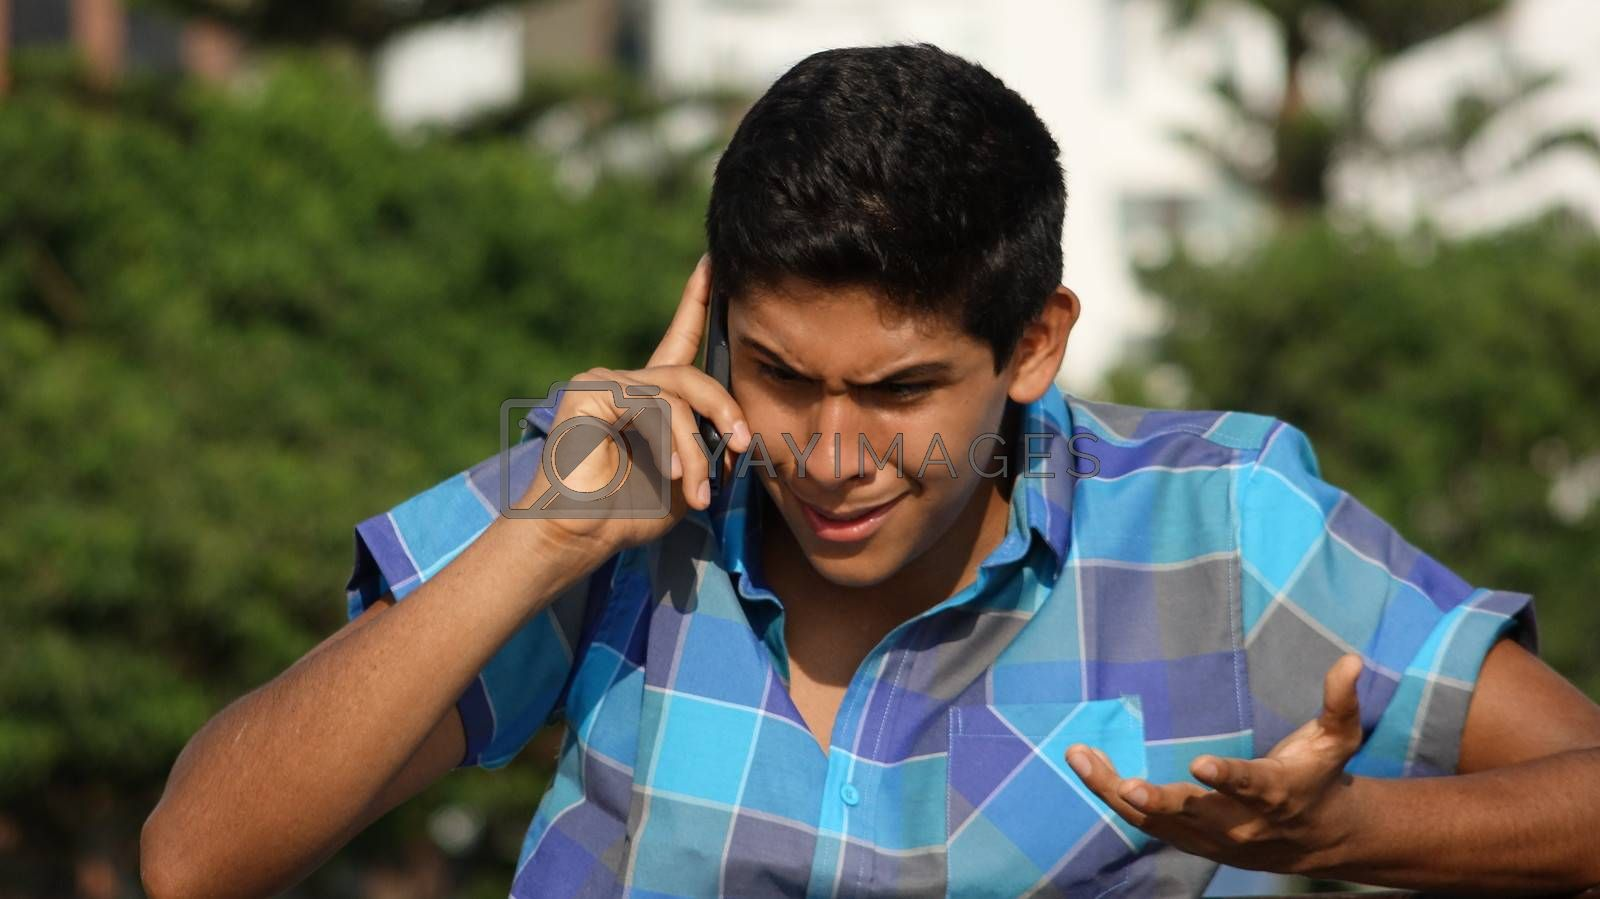 Angry Or Stressed Teen Phone Call